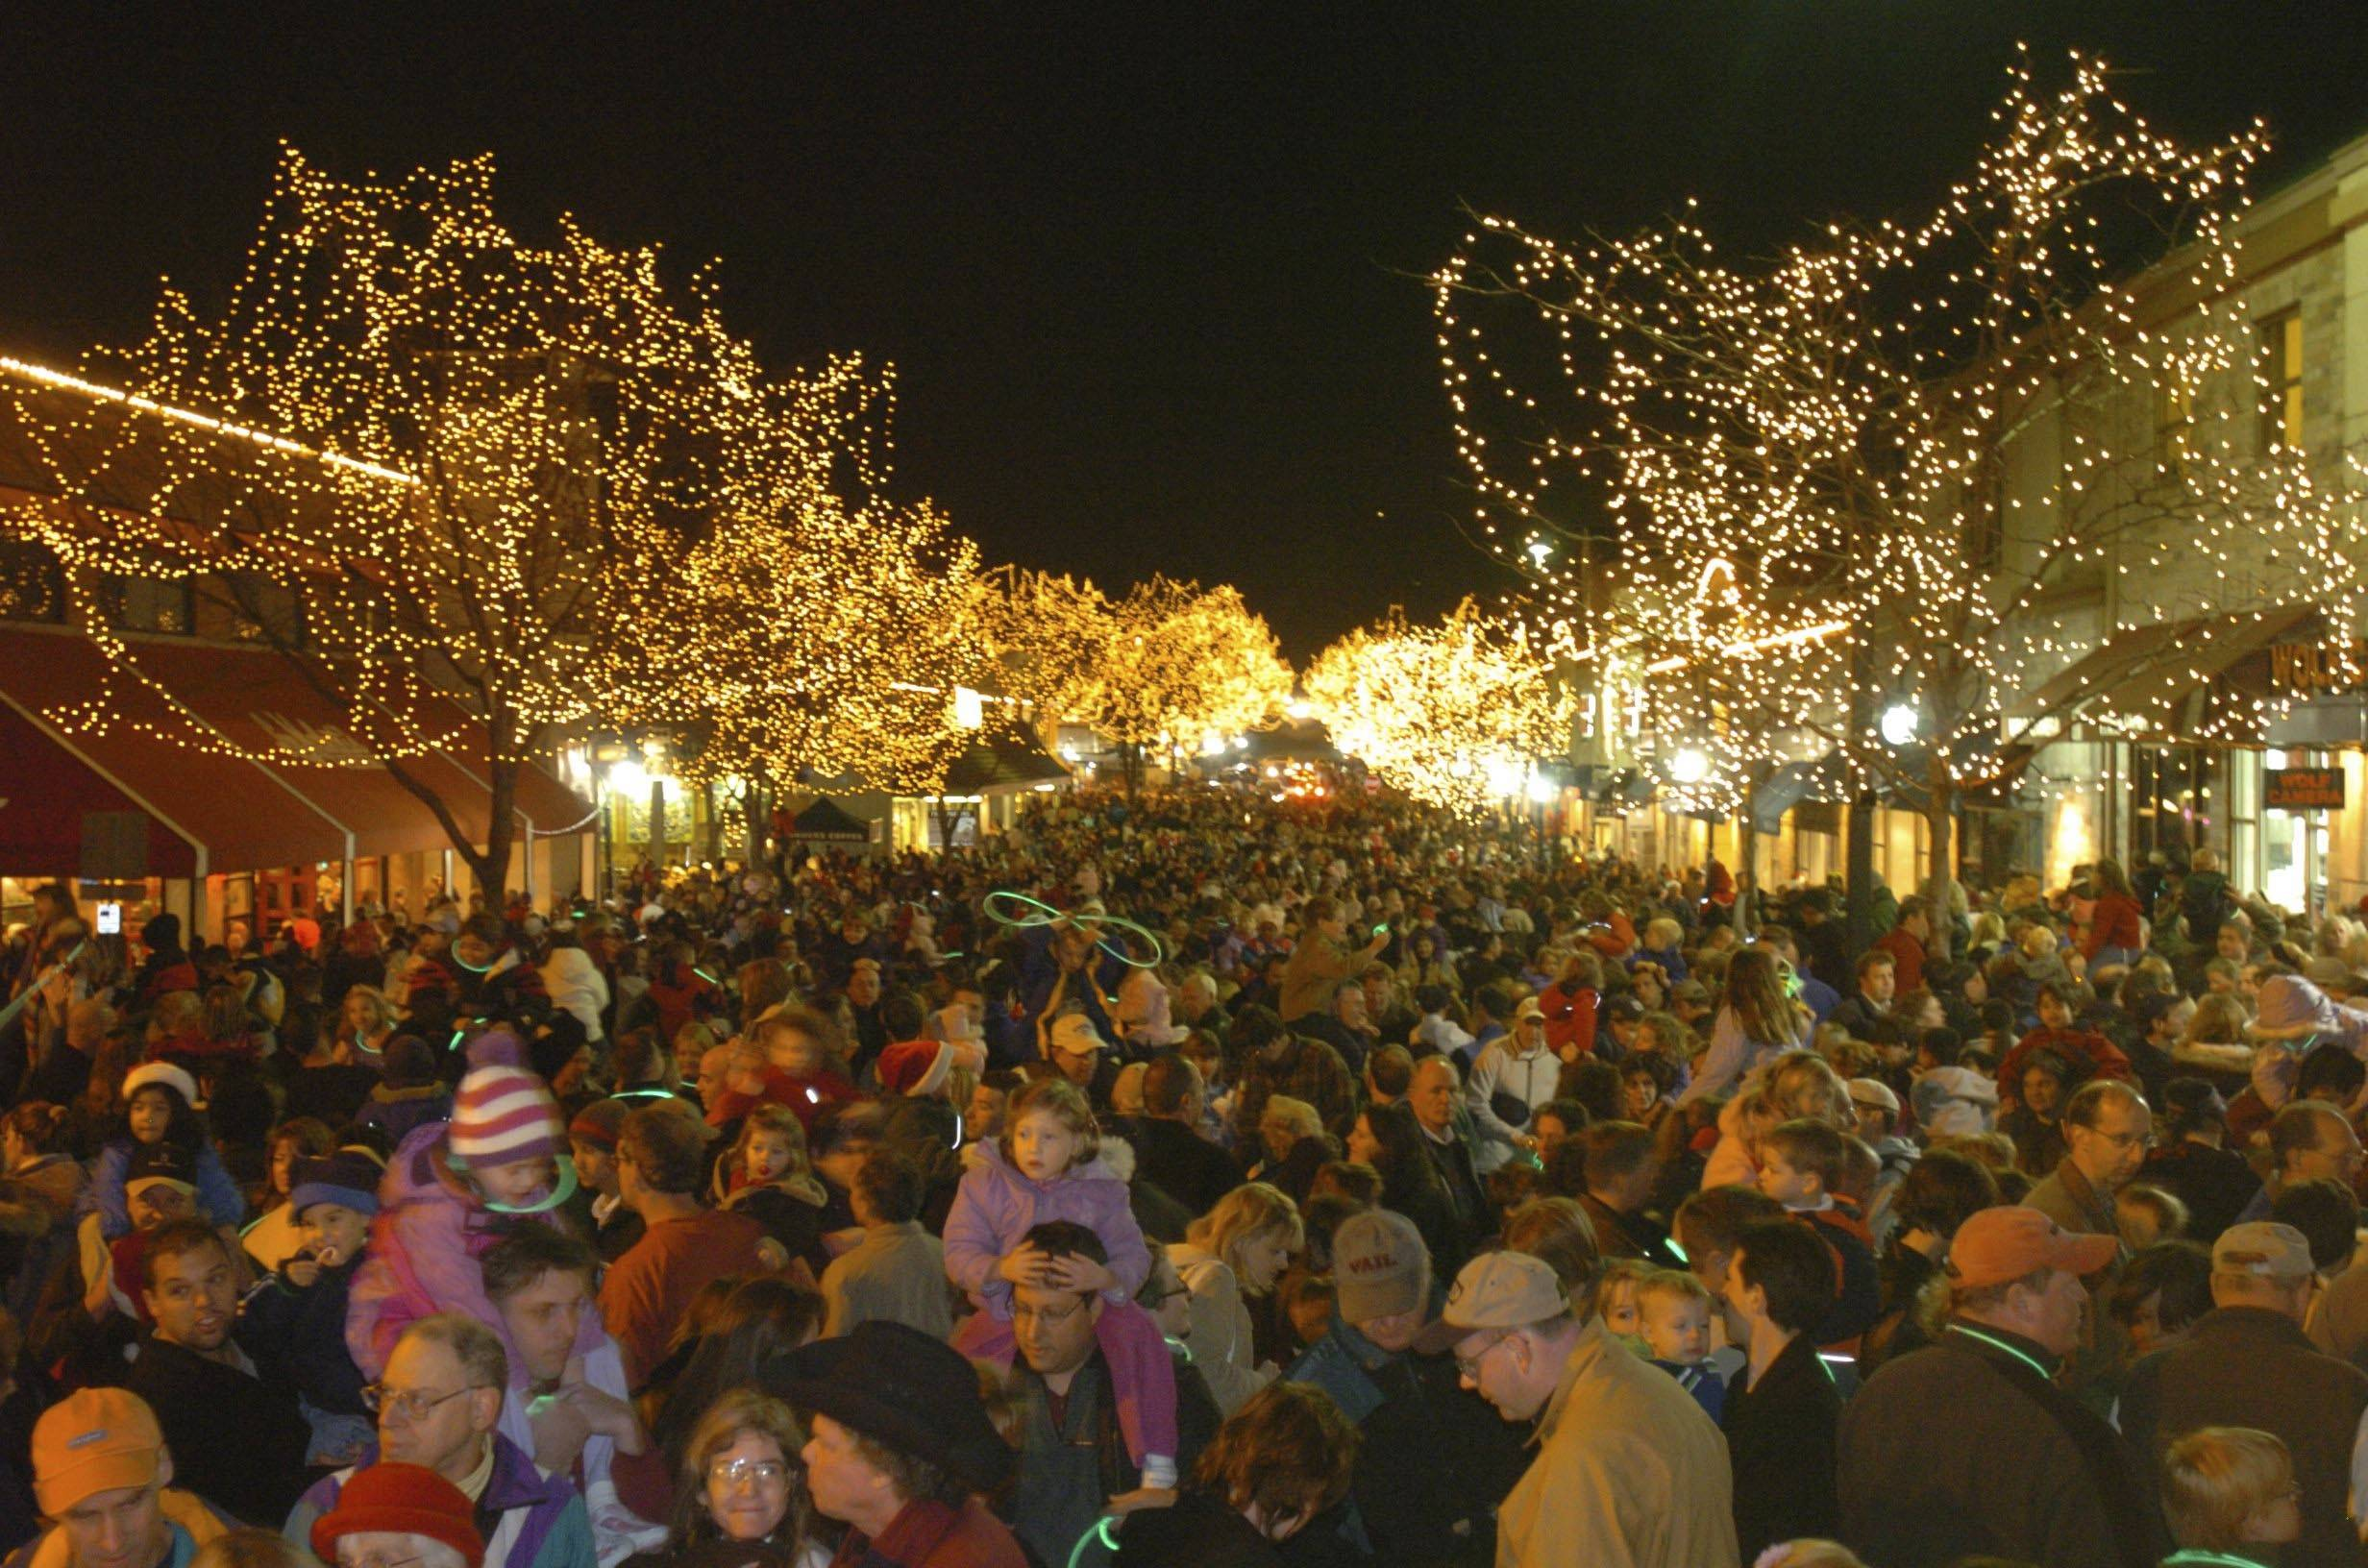 'Welcoming lights' ring in Naperville Marathon, holiday season